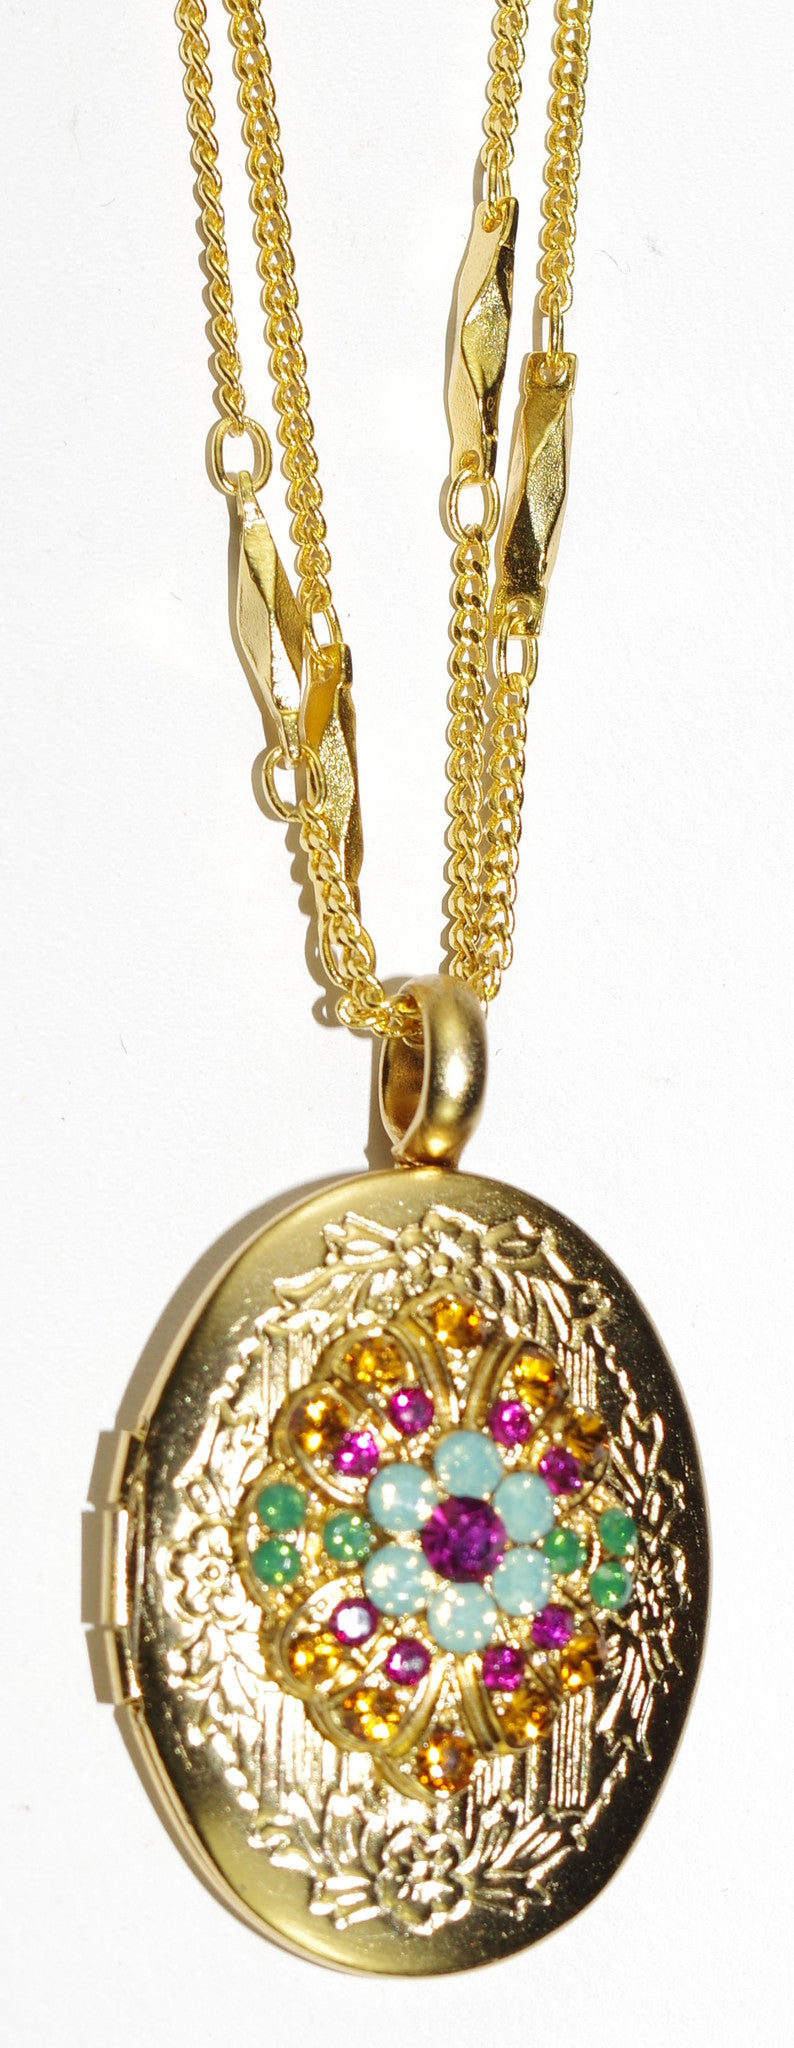 "MARIANA PENDANT LOCKET HAPPY DAYS:  blue, amber, pink stones in 1"" locket in yellow gold setting, 19"" adjustable chain"